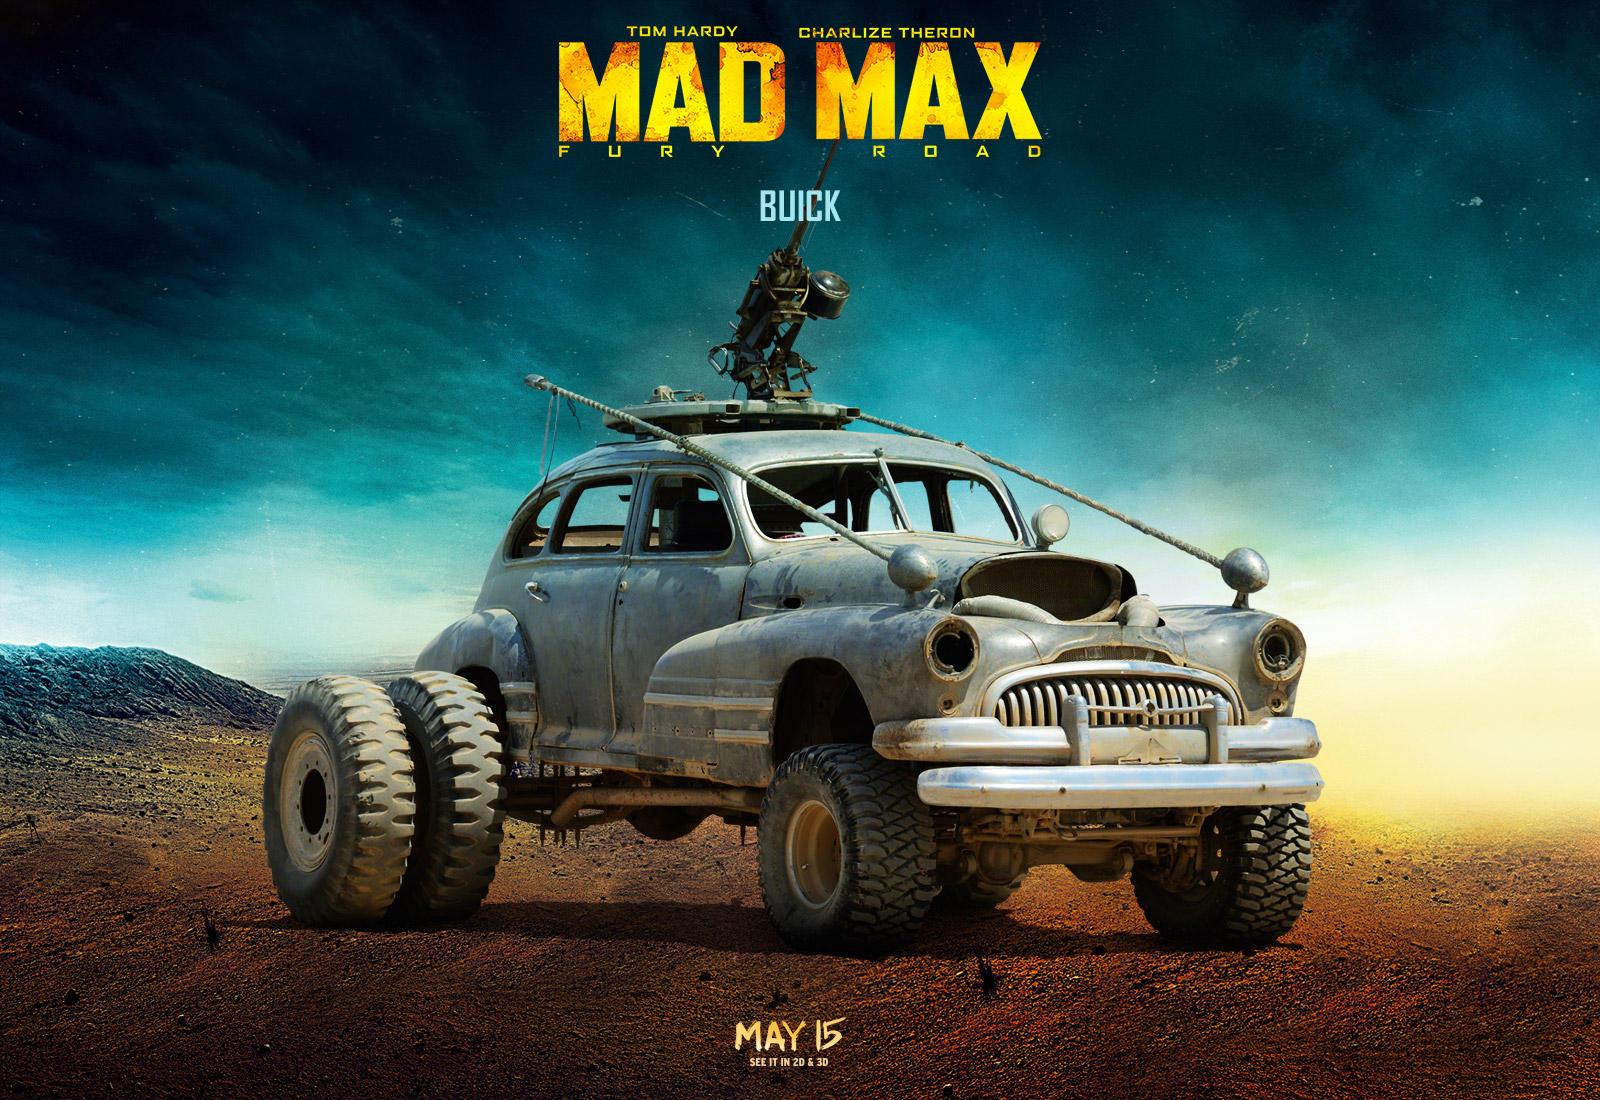 madmax-buick-cars